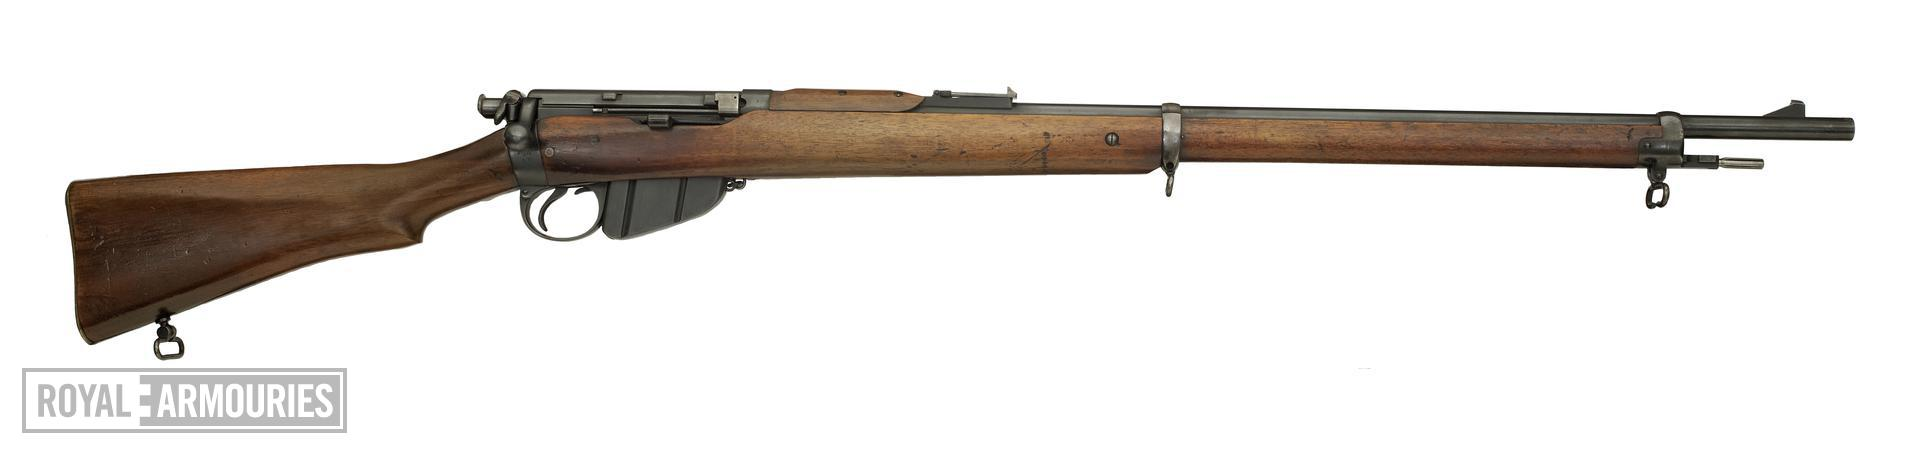 Bolt action magazine military rifle (Lee Enfield Rifle, Mk. 1). British, 1895